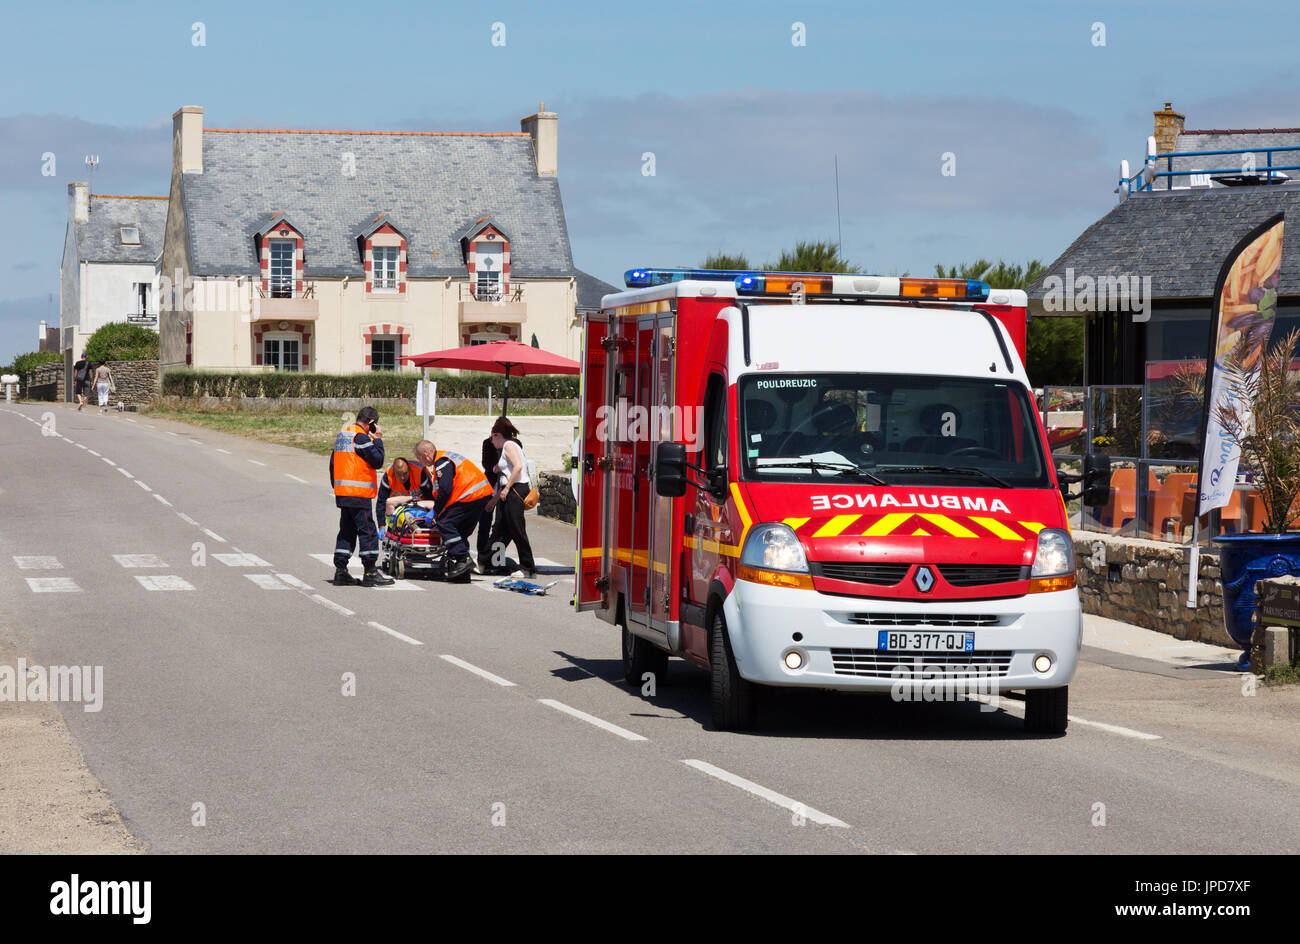 France Ambulance - a french emergency ambulance attending a road accident, Brittany, France Europe - Stock Image